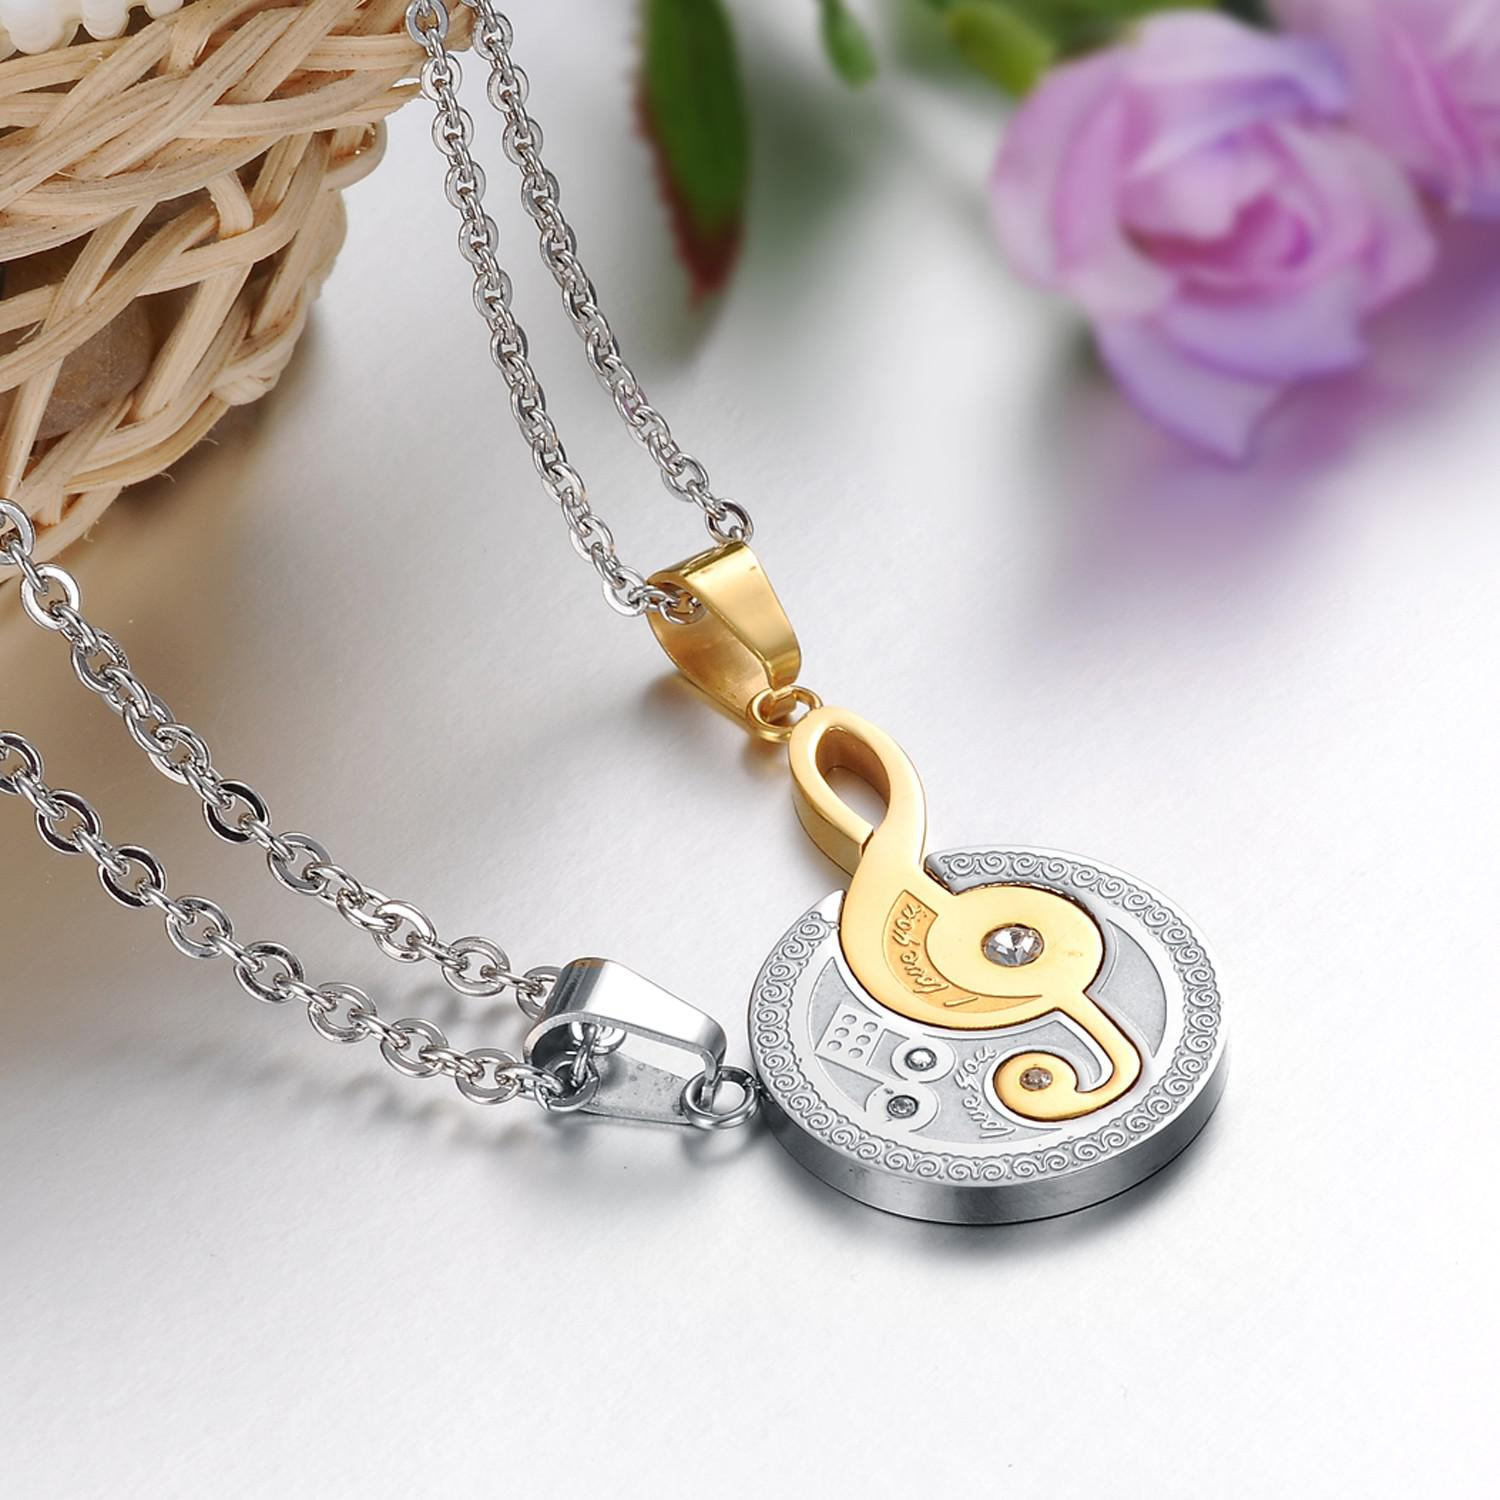 design product for couple two key steel wholesale with necklace heart free titanium lock chains half puzzle pendant